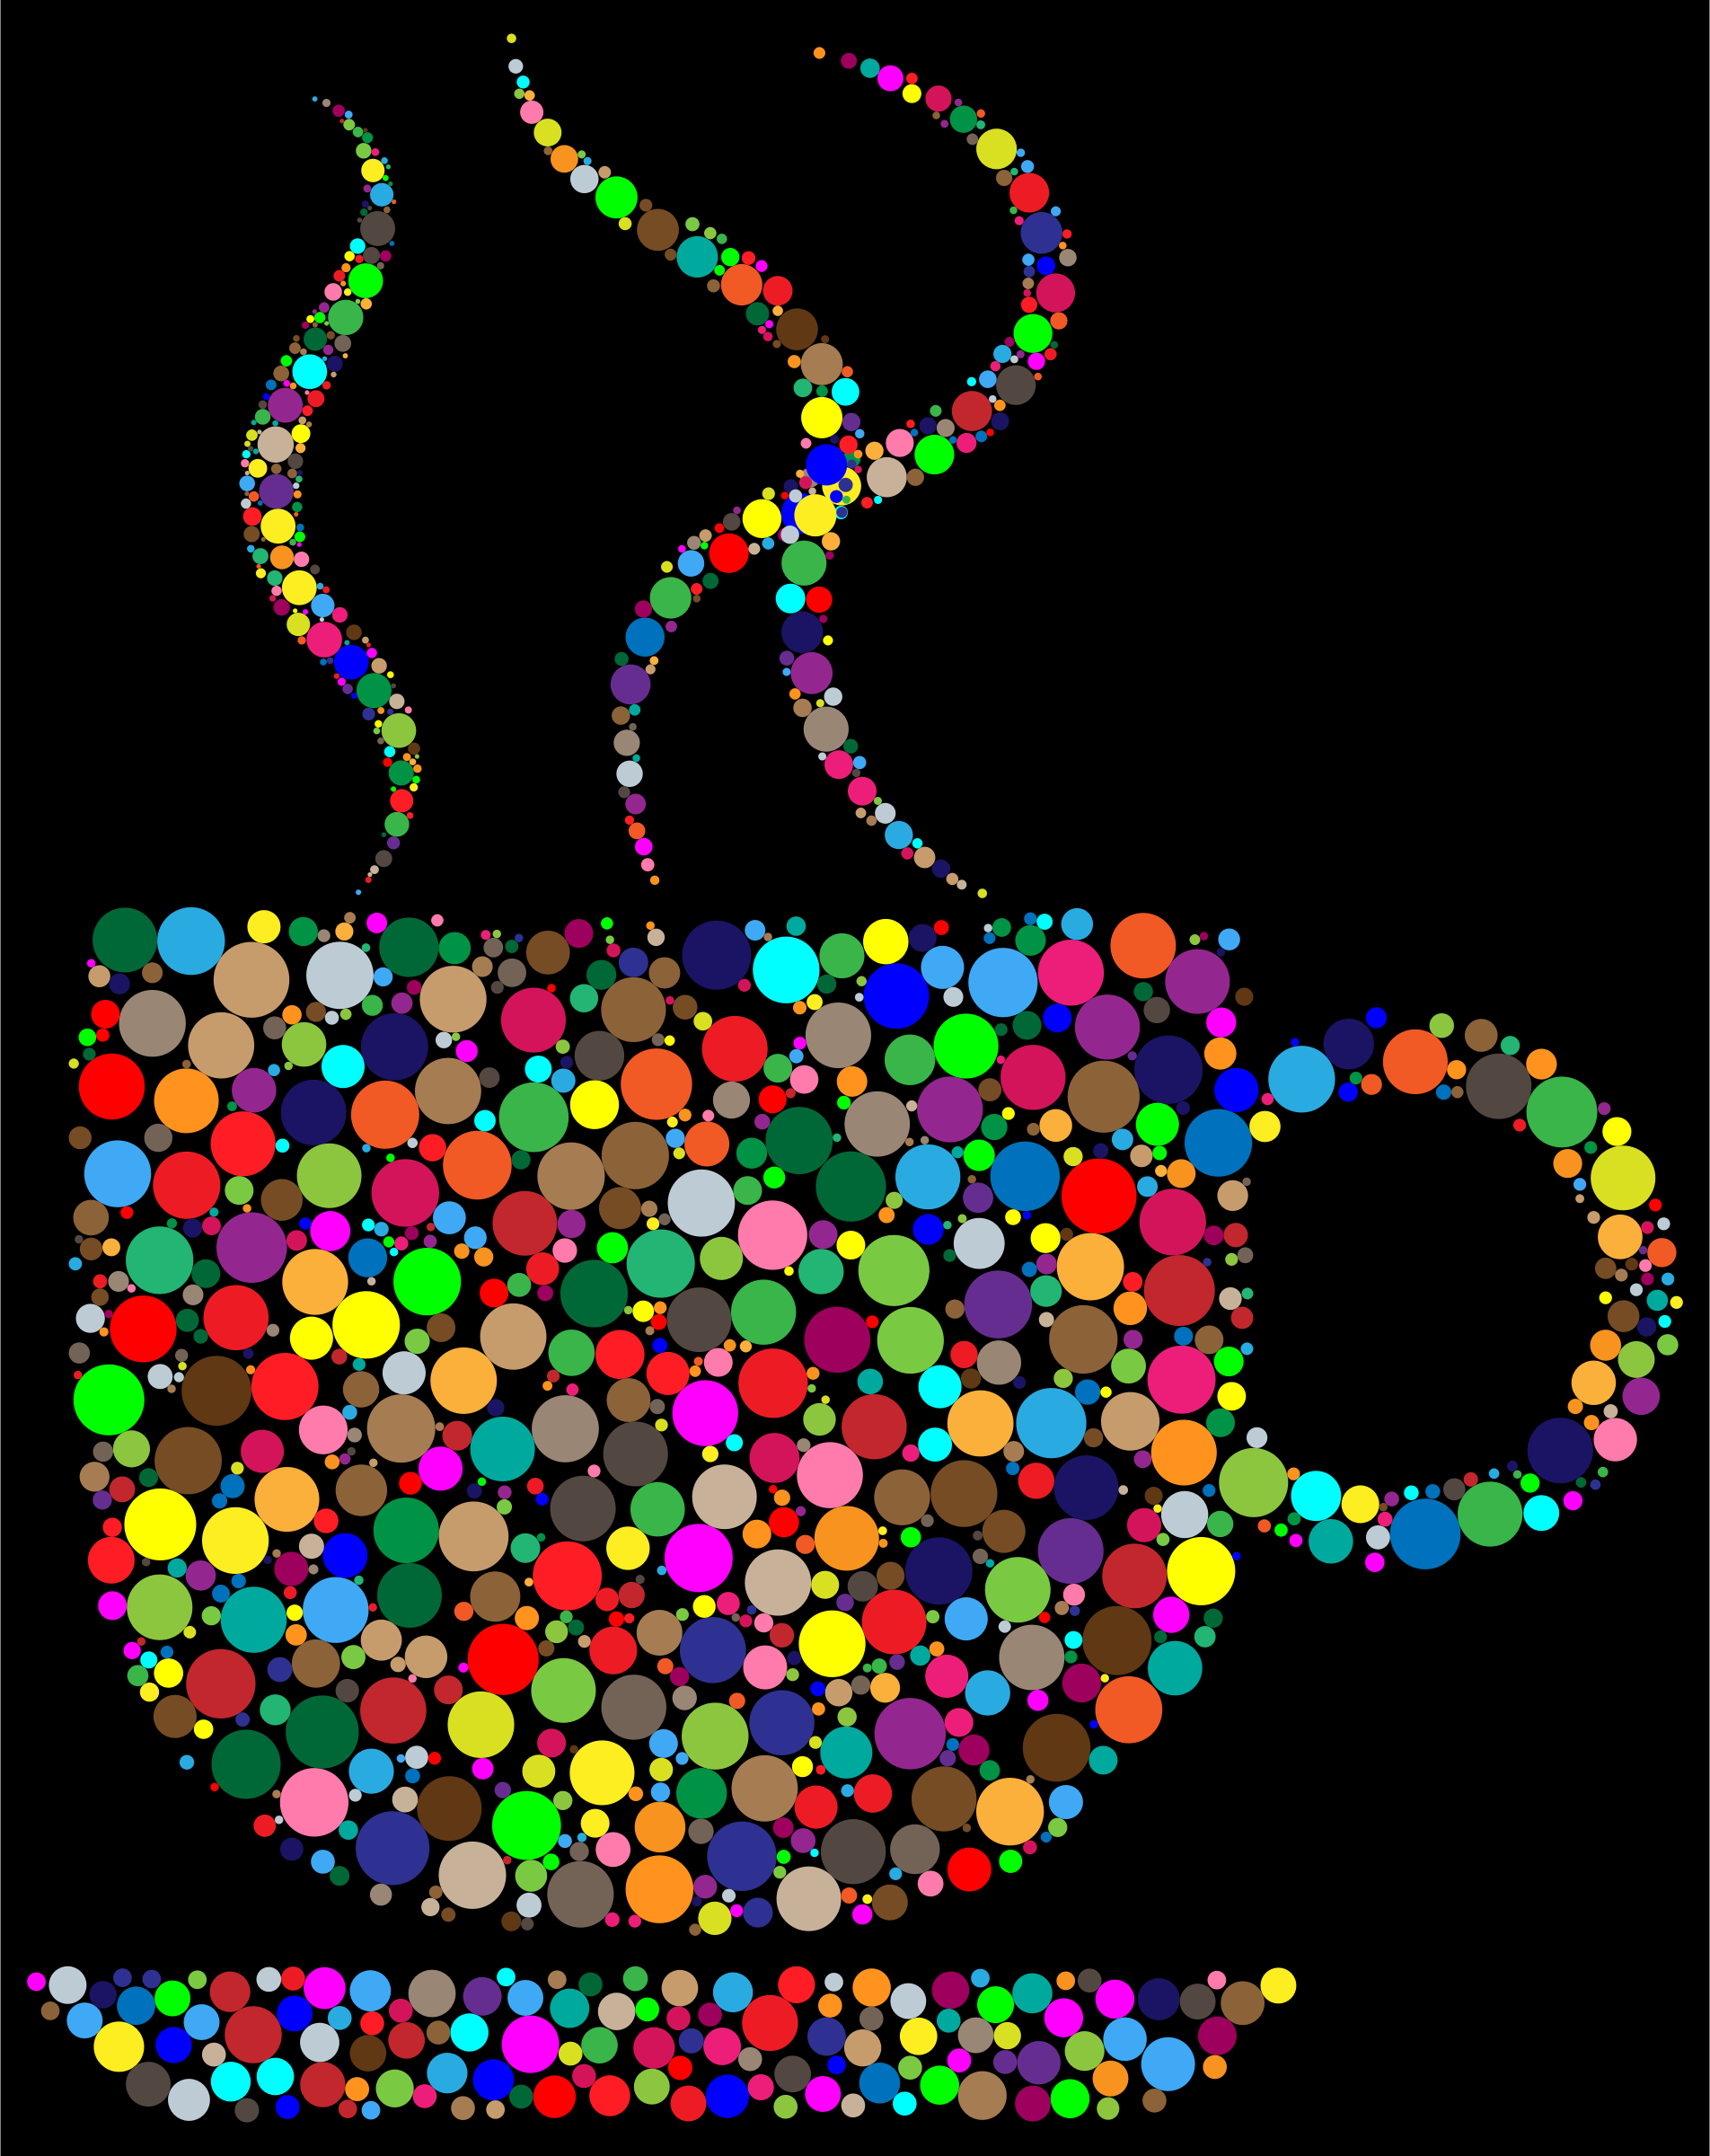 Colorful Coffee Circles With Black Background by GDJ